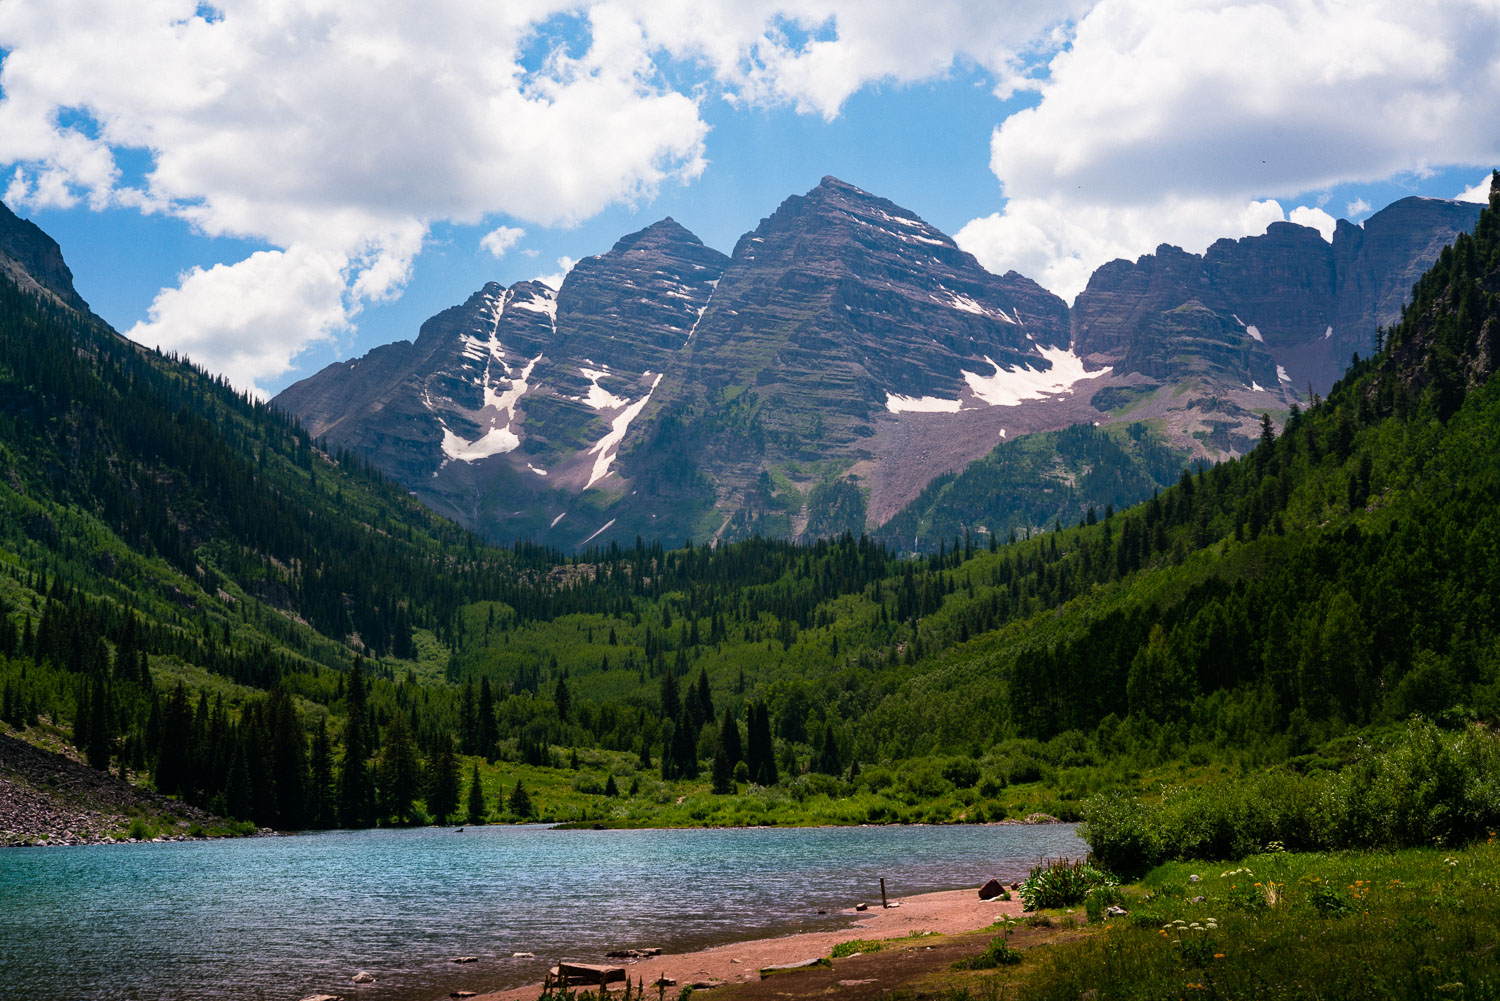 The stunning Maroon Bells! 14,000 footers. Very tall mountains but still only half the height of K2 in the Himalayas.